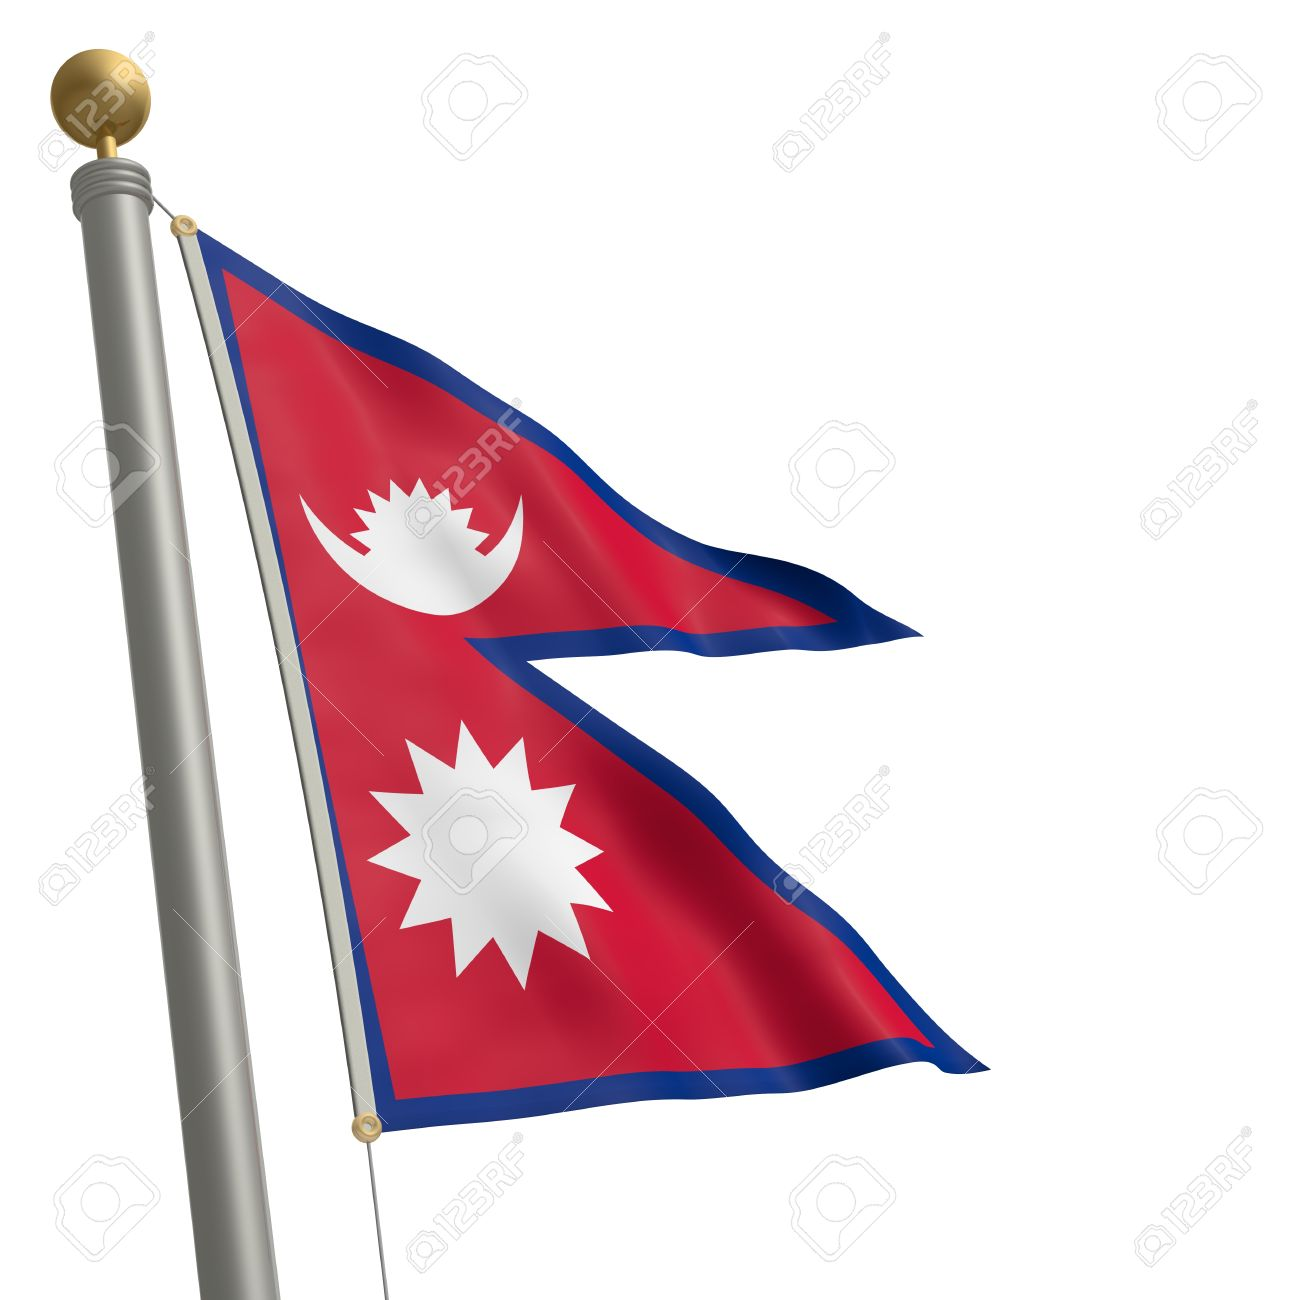 Nepal's Economy Likely To Be Coronafied